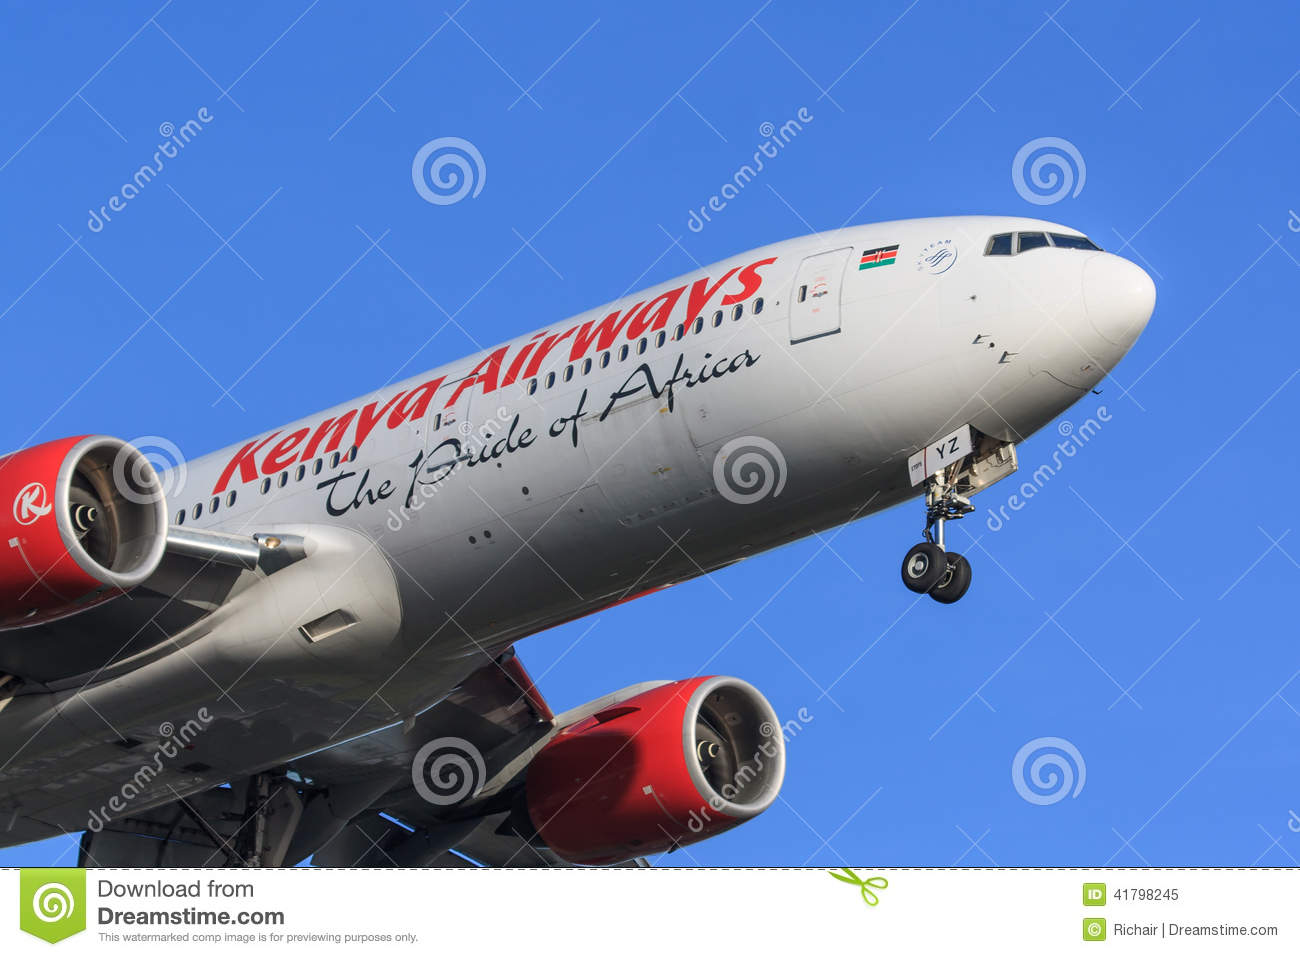 Kenya Airways jet